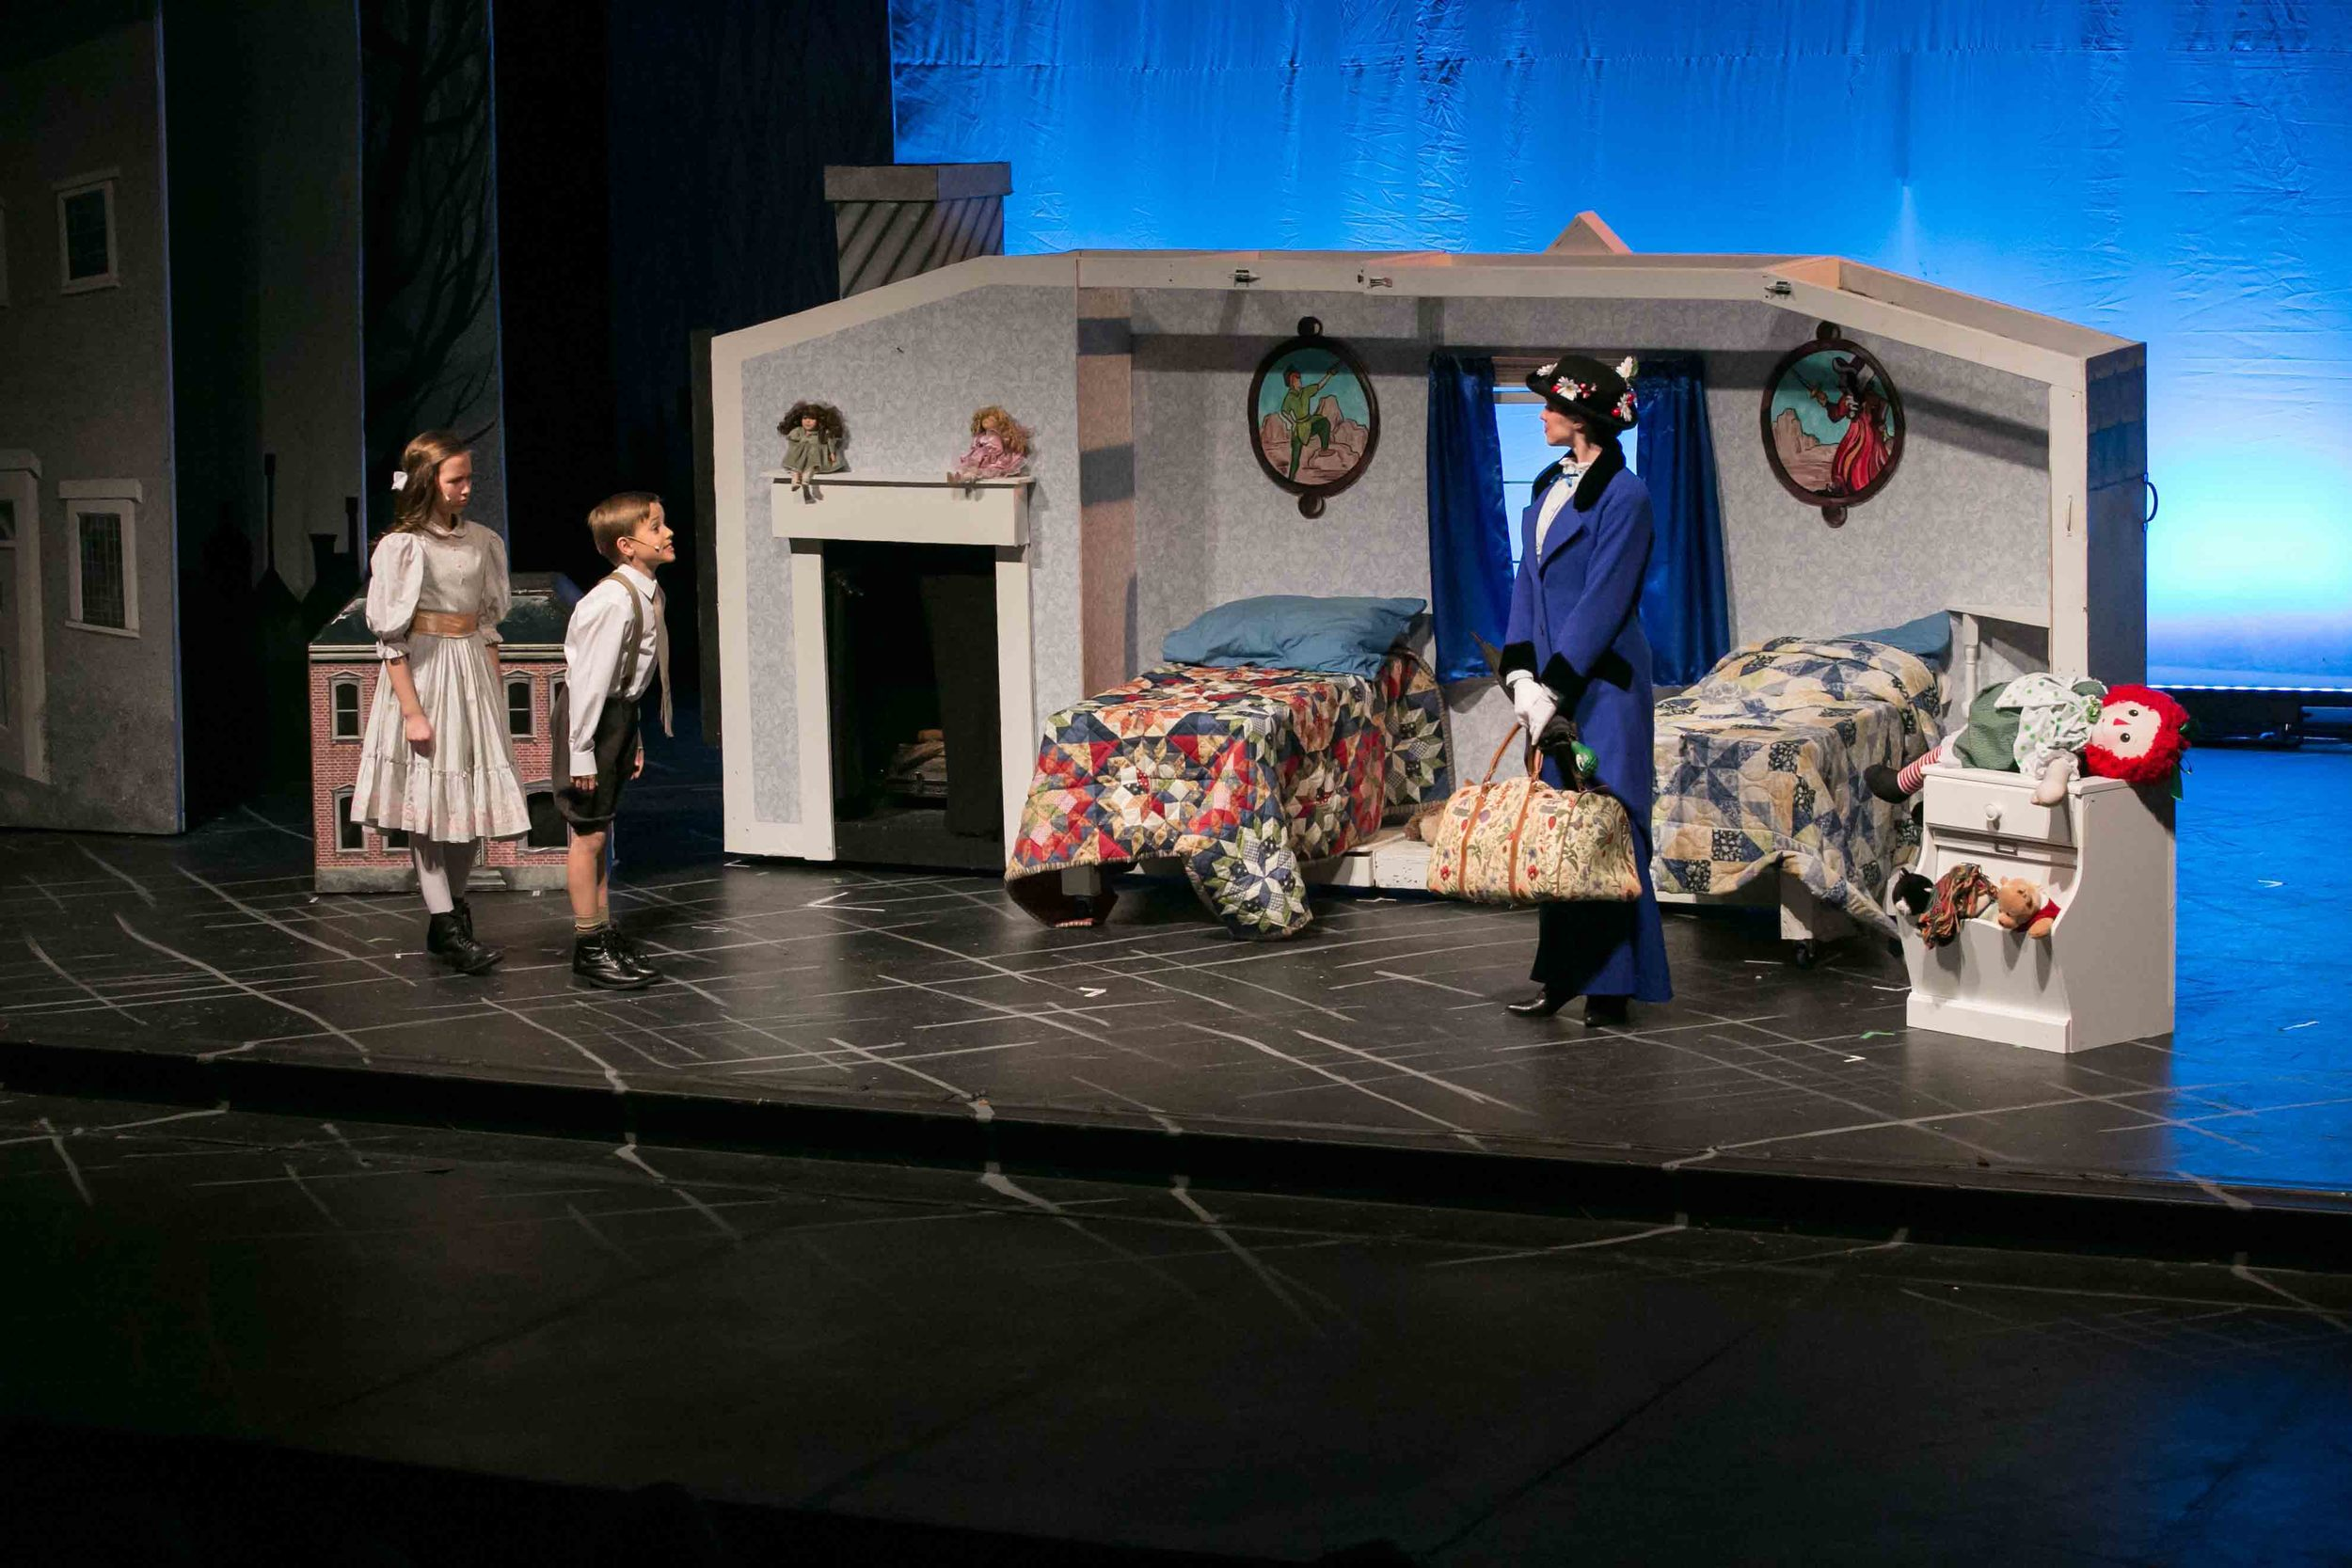 2-4-16 Mary Poppins Proper Cast 0077.jpg